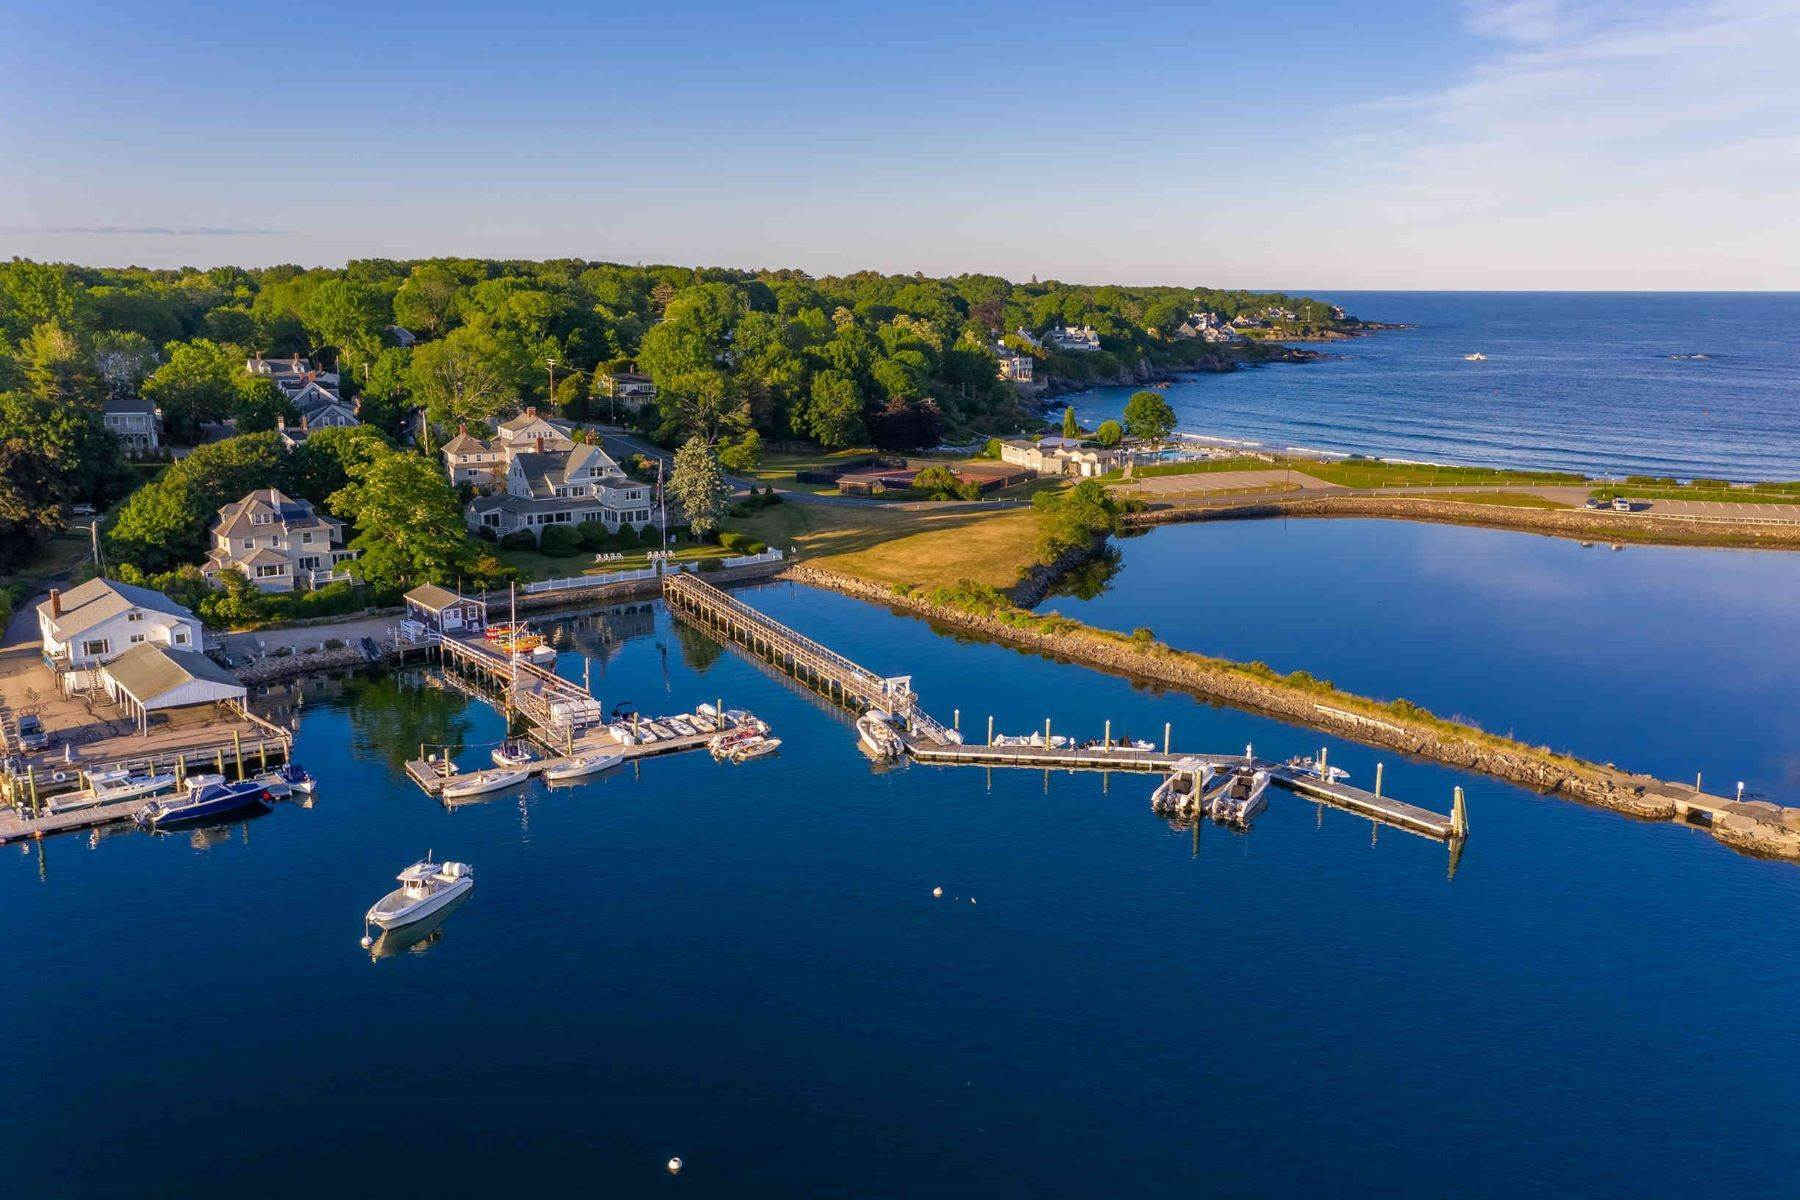 Multi-Family Homes for Sale at The Iconic Edwards' Harborside & Marina in York Harbor 7 Stage Neck Road York, Maine 03909 United States